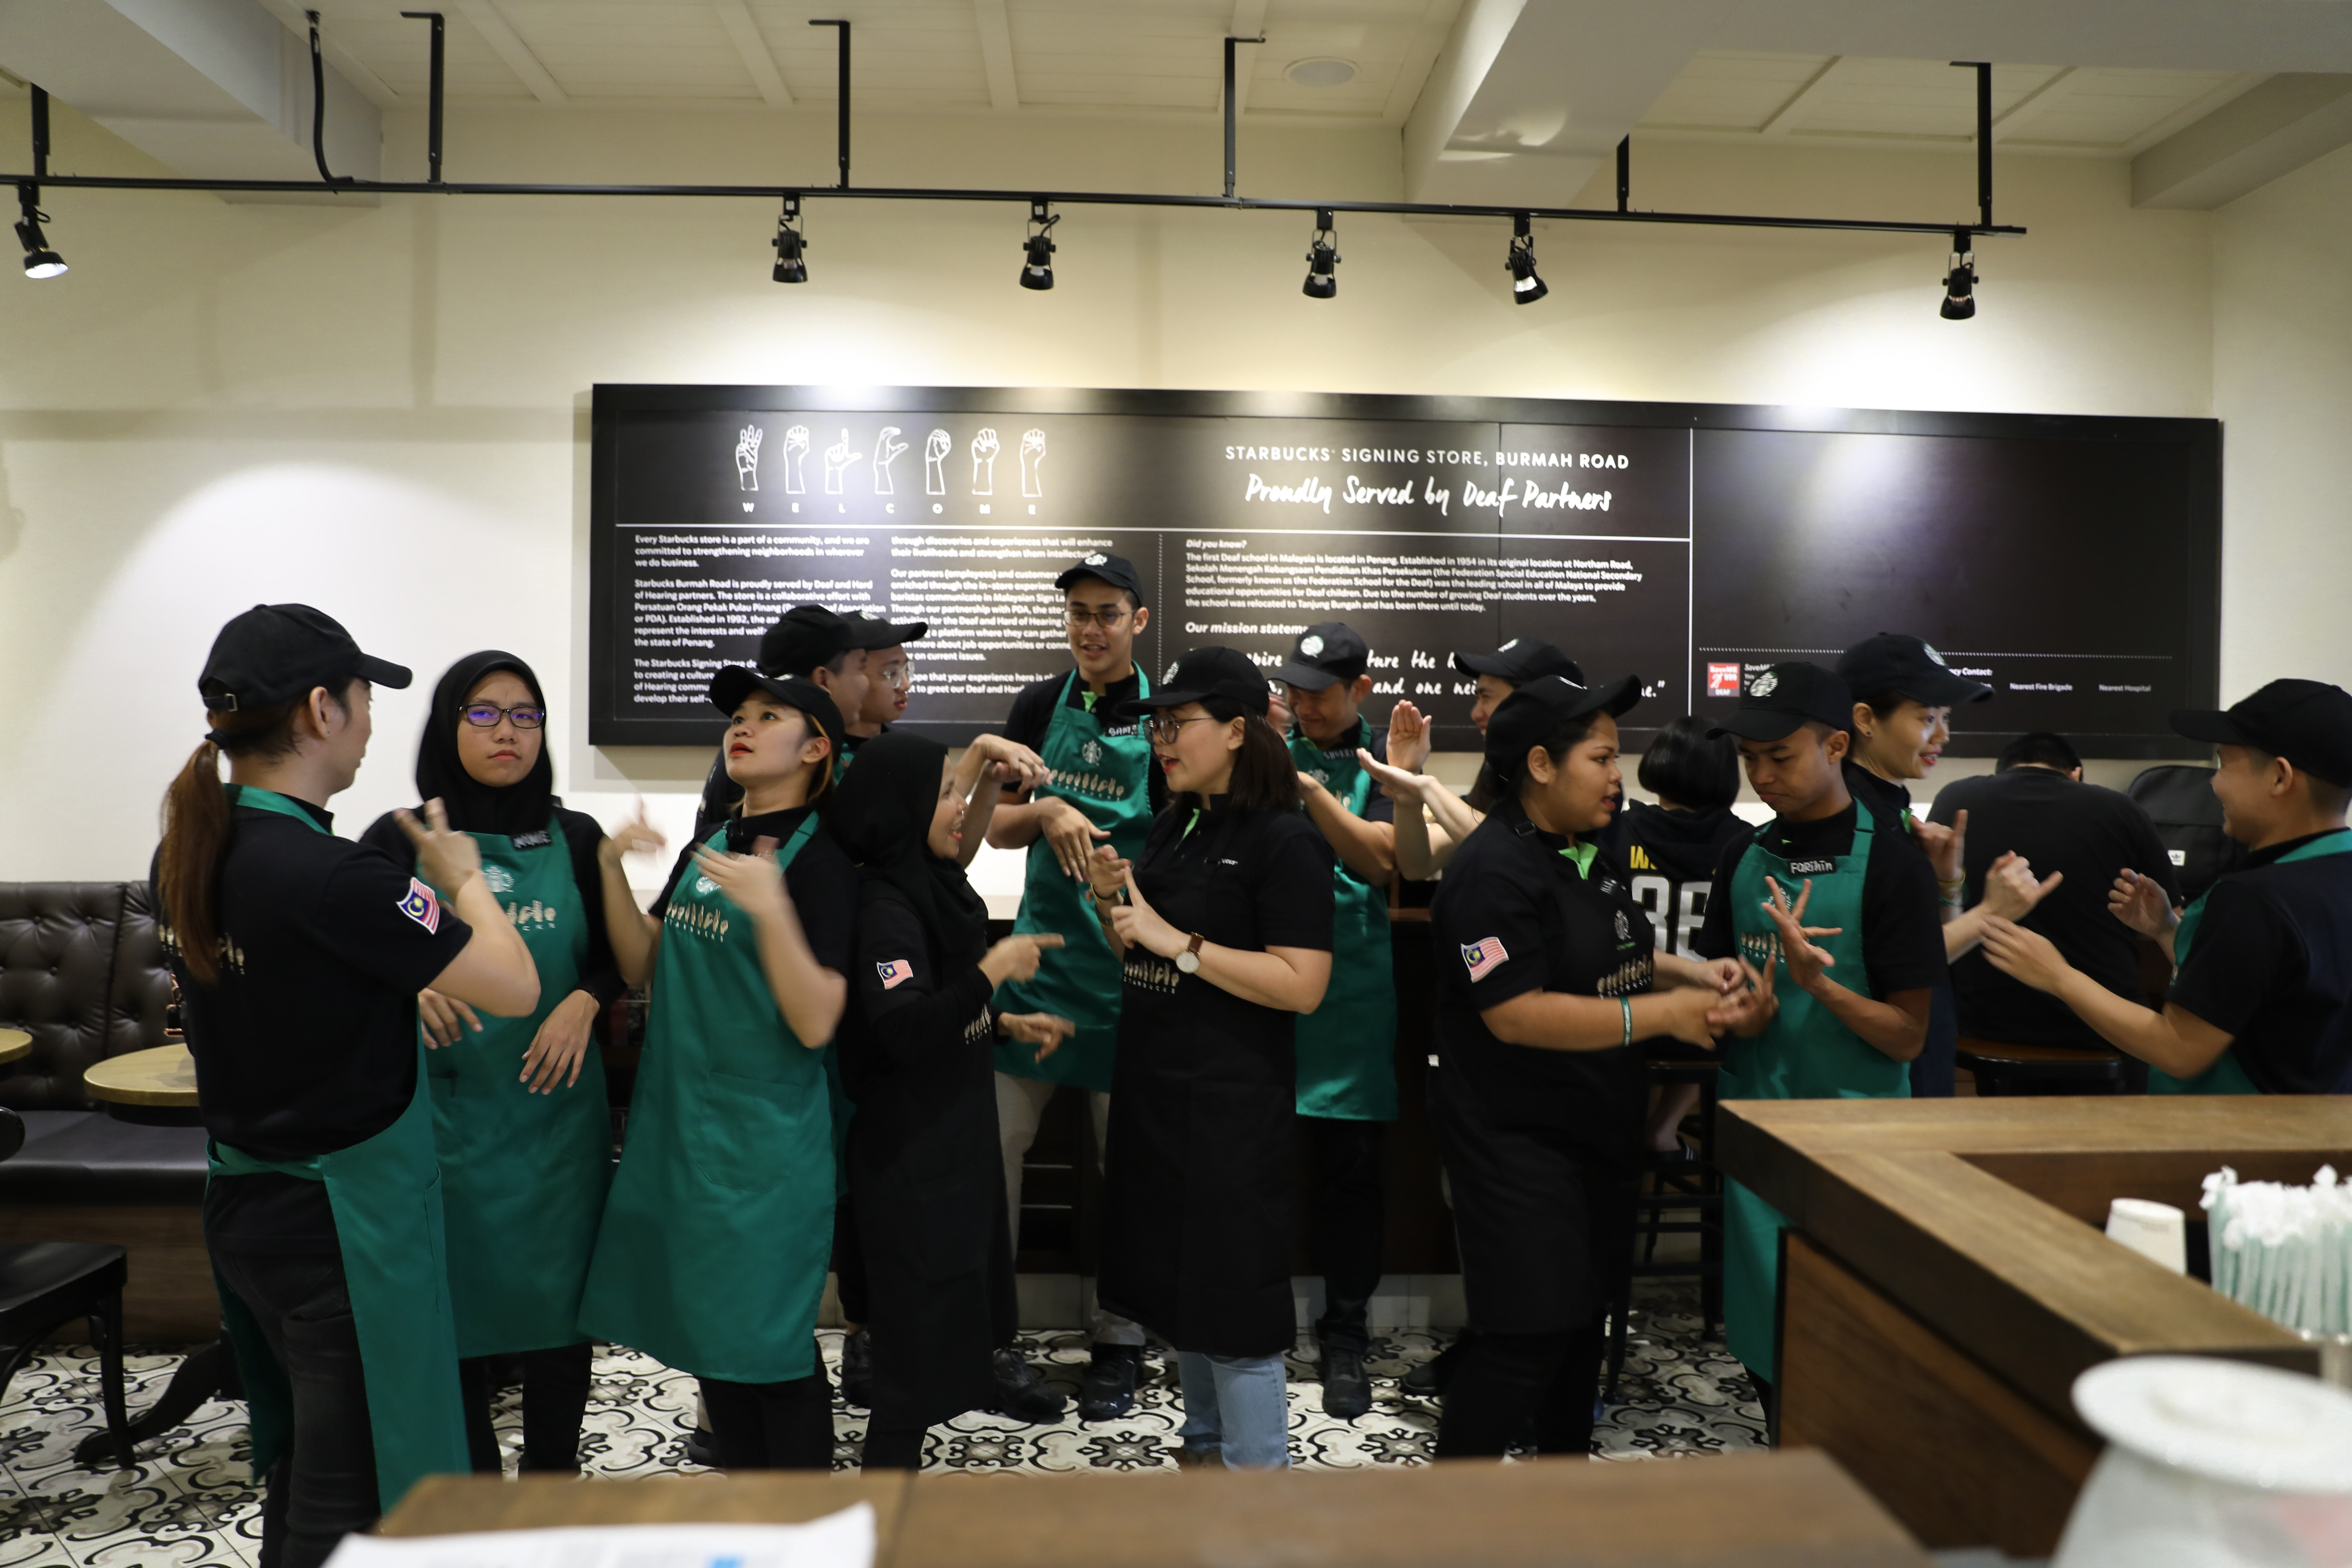 Starbucks Opens World's Fourth Signing Store in Penang